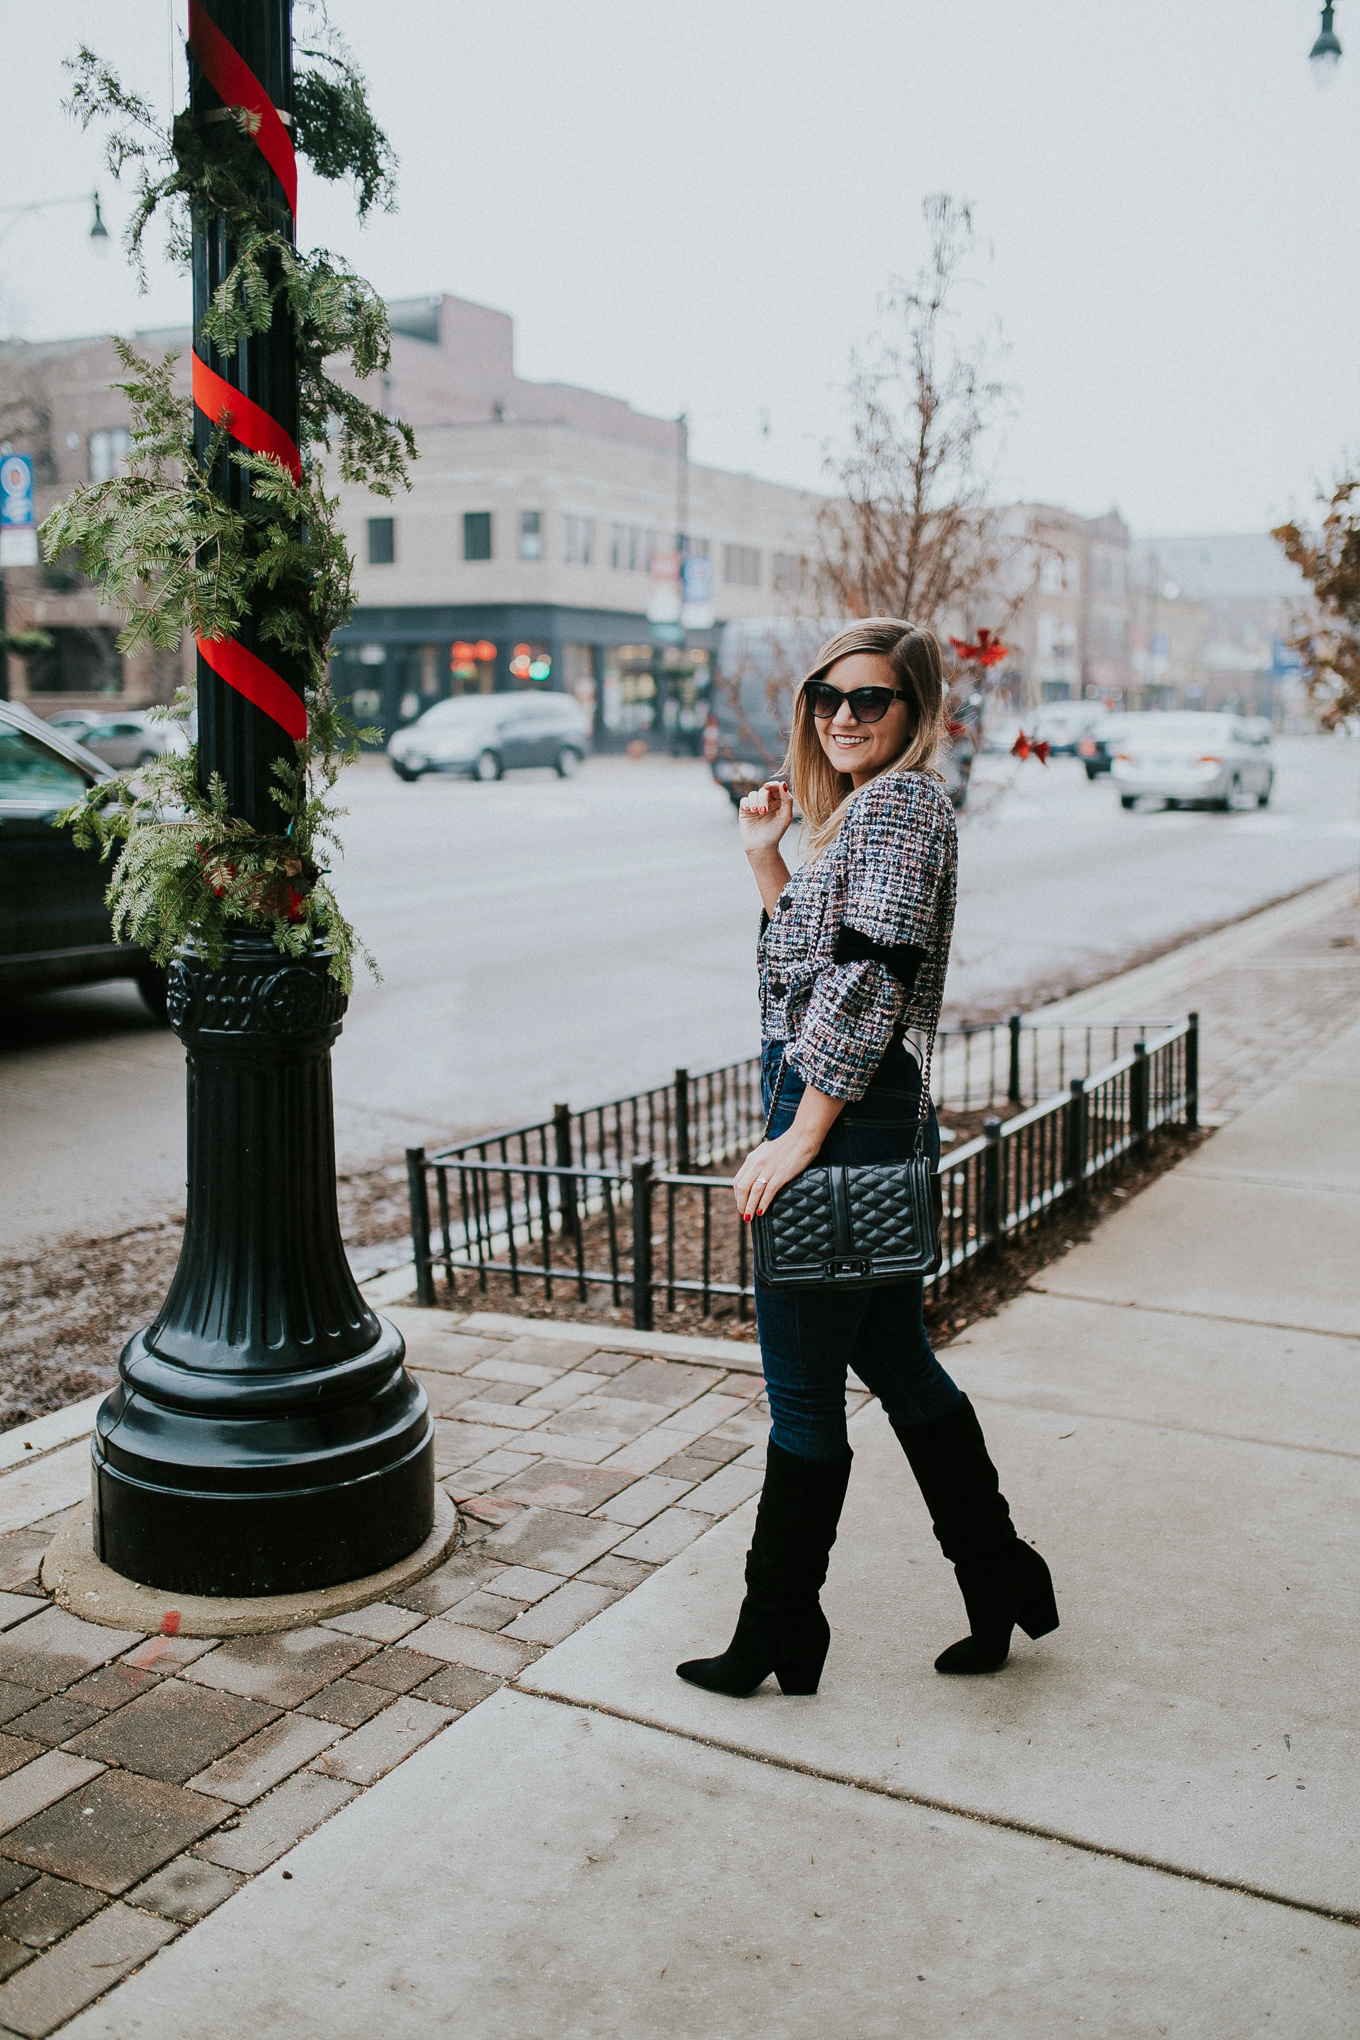 How To Style A Tweed Jacket (so you don't look like a Grandma)